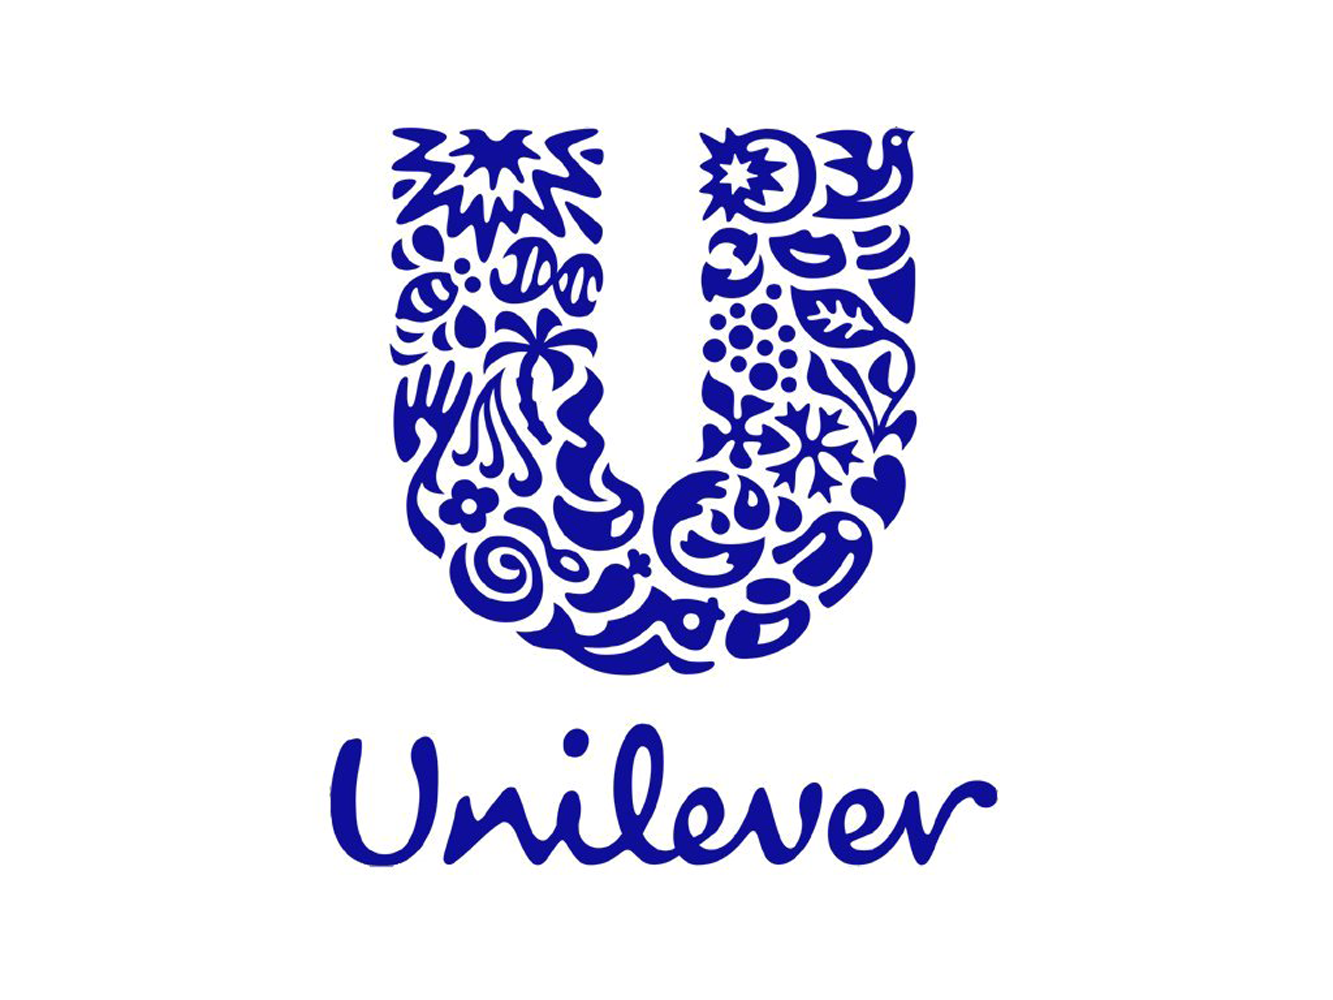 Unilever logo Wallpaper